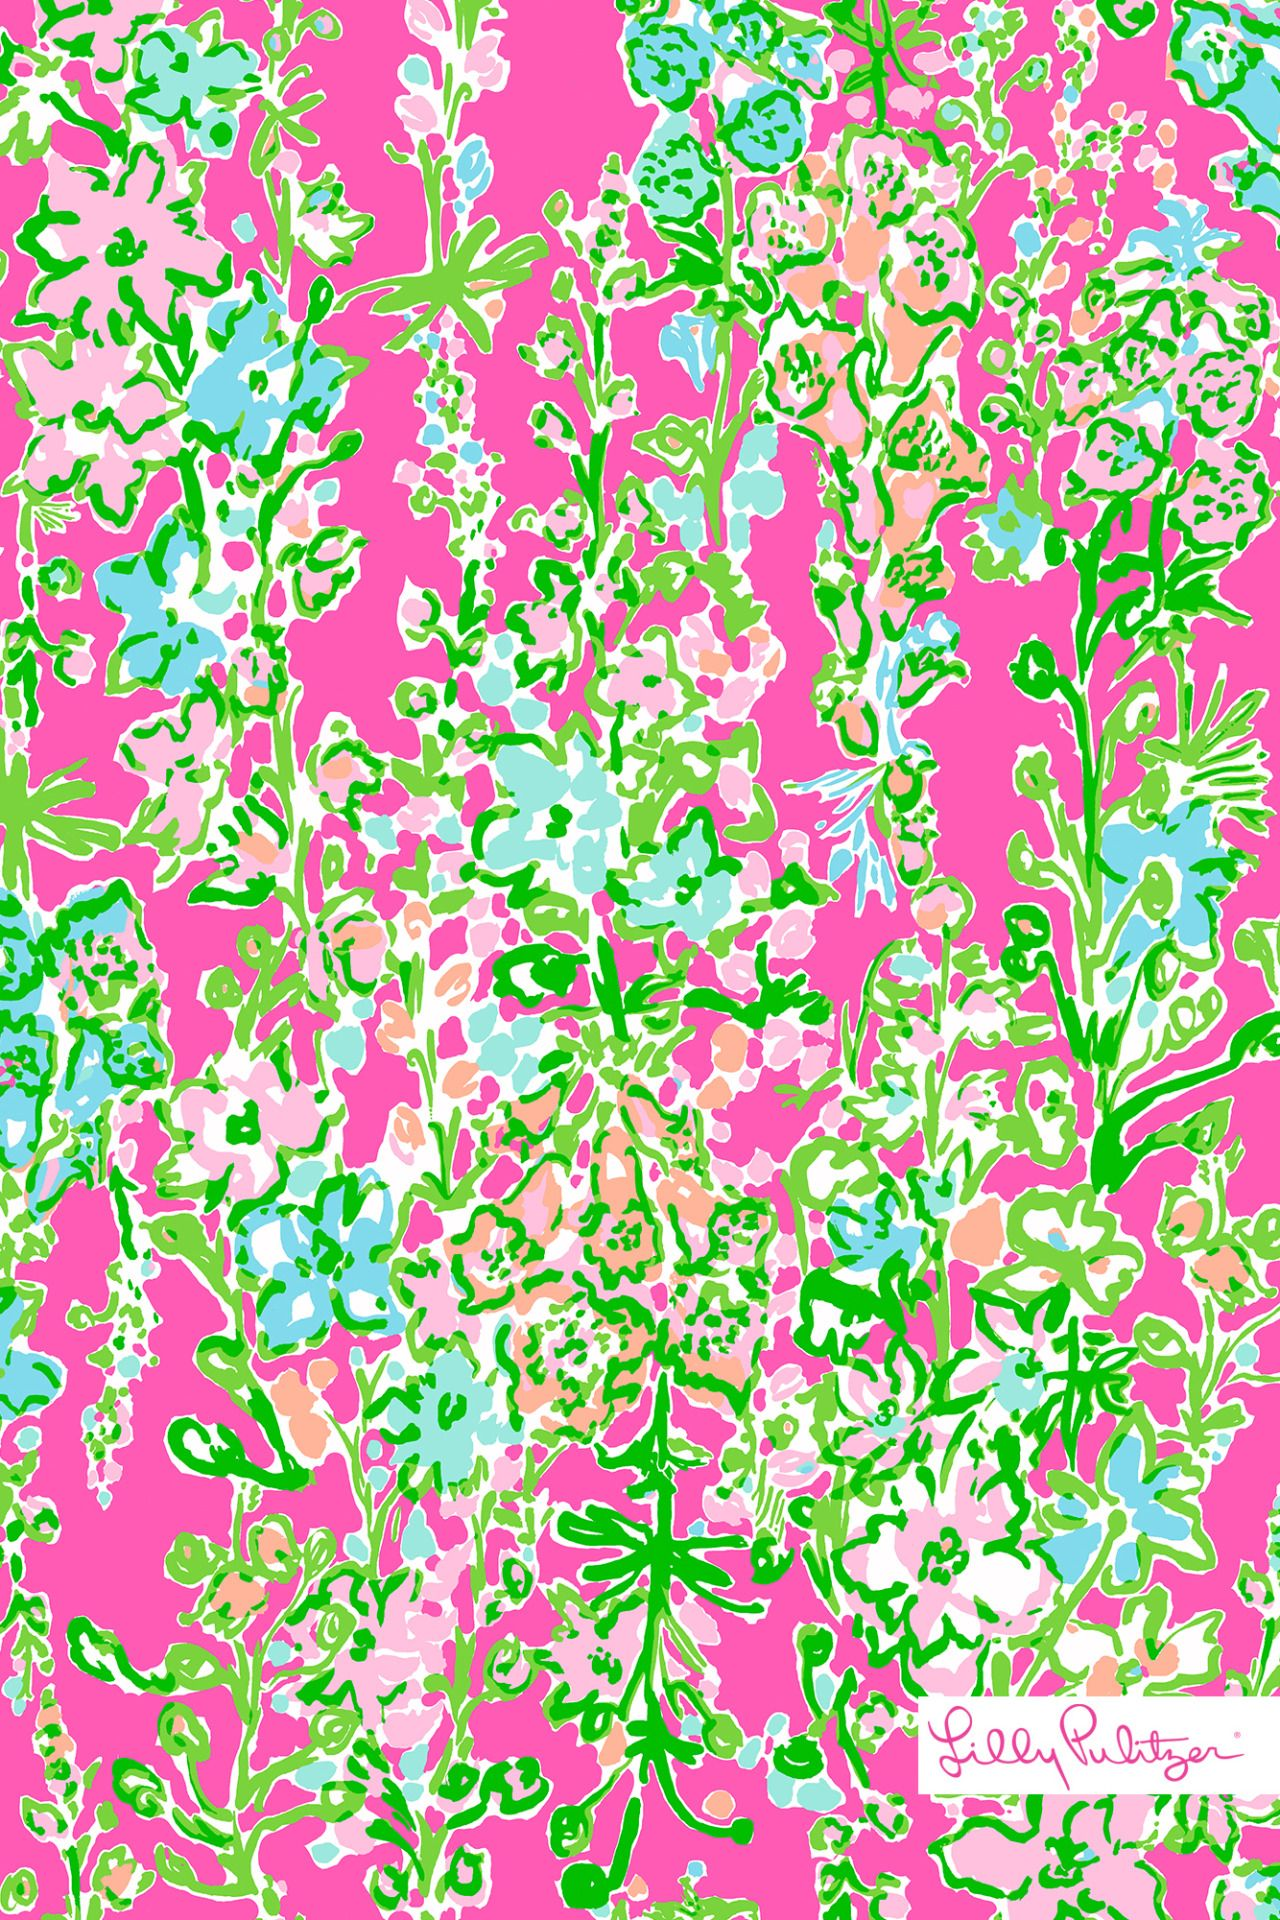 b3b2193f32bb92 Lilly Pulitzer Southern Charm mobile wallpaperCheck out the rest of my  Lilly wallpapers here!